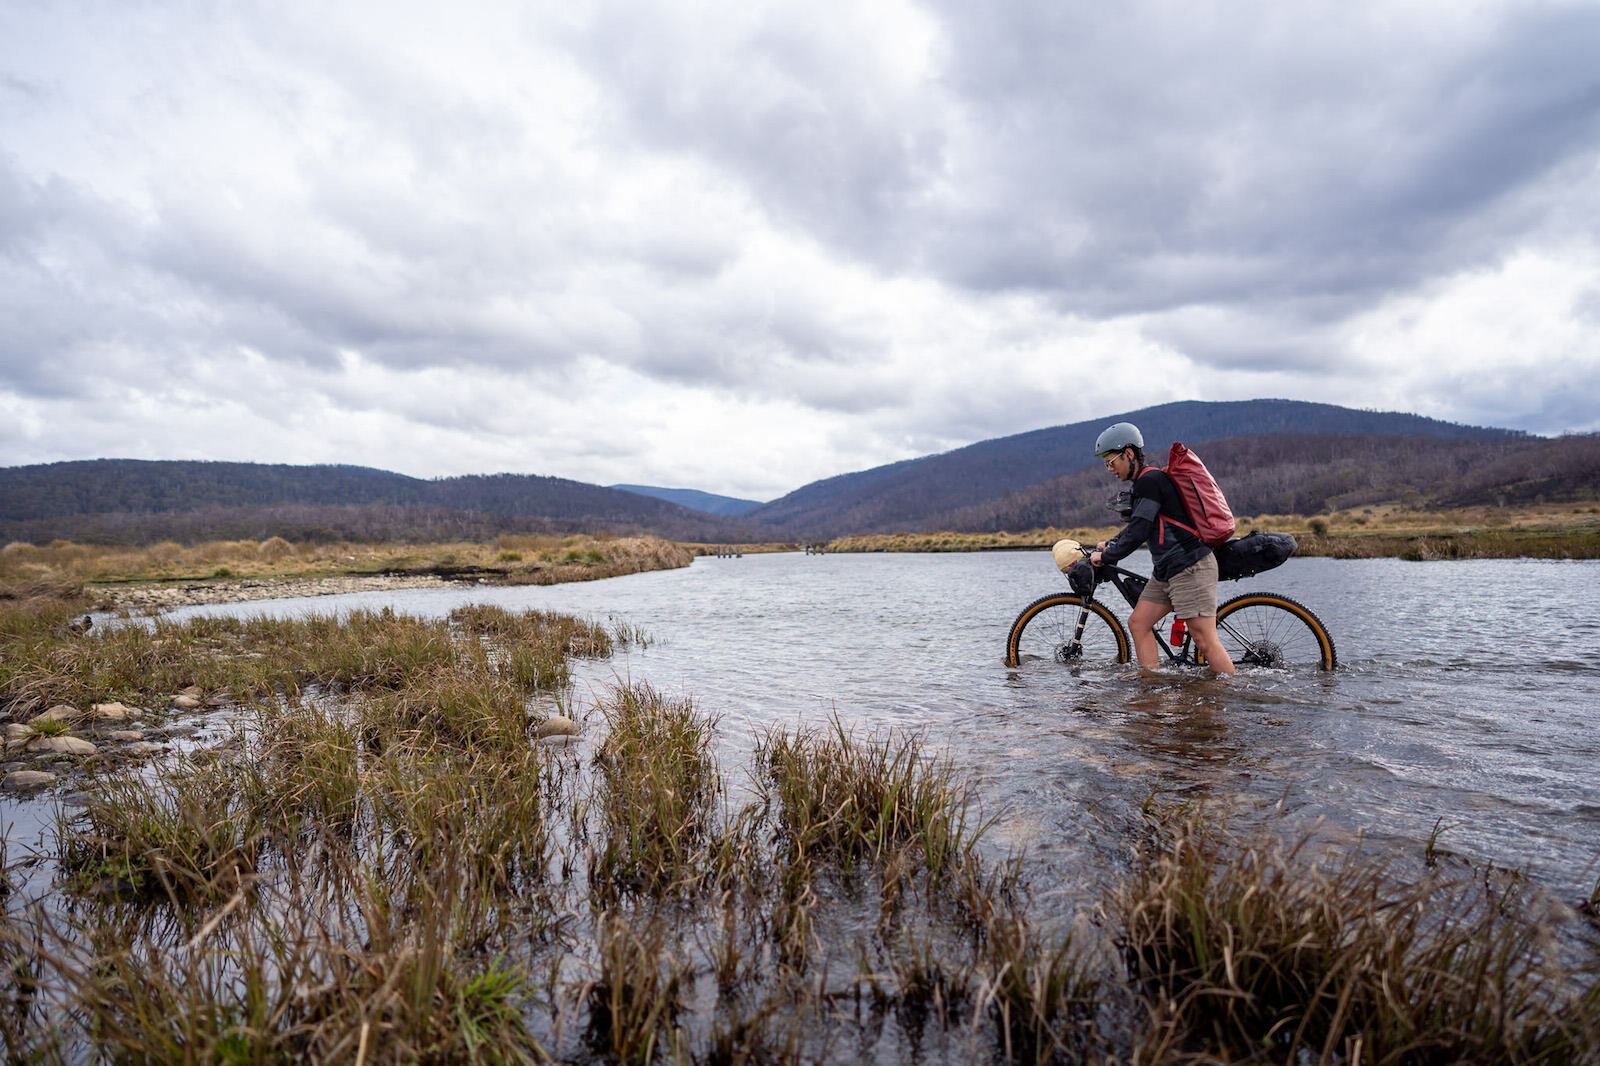 crossing the Eucumbene river near Denisons Campground on a bikepacking trip